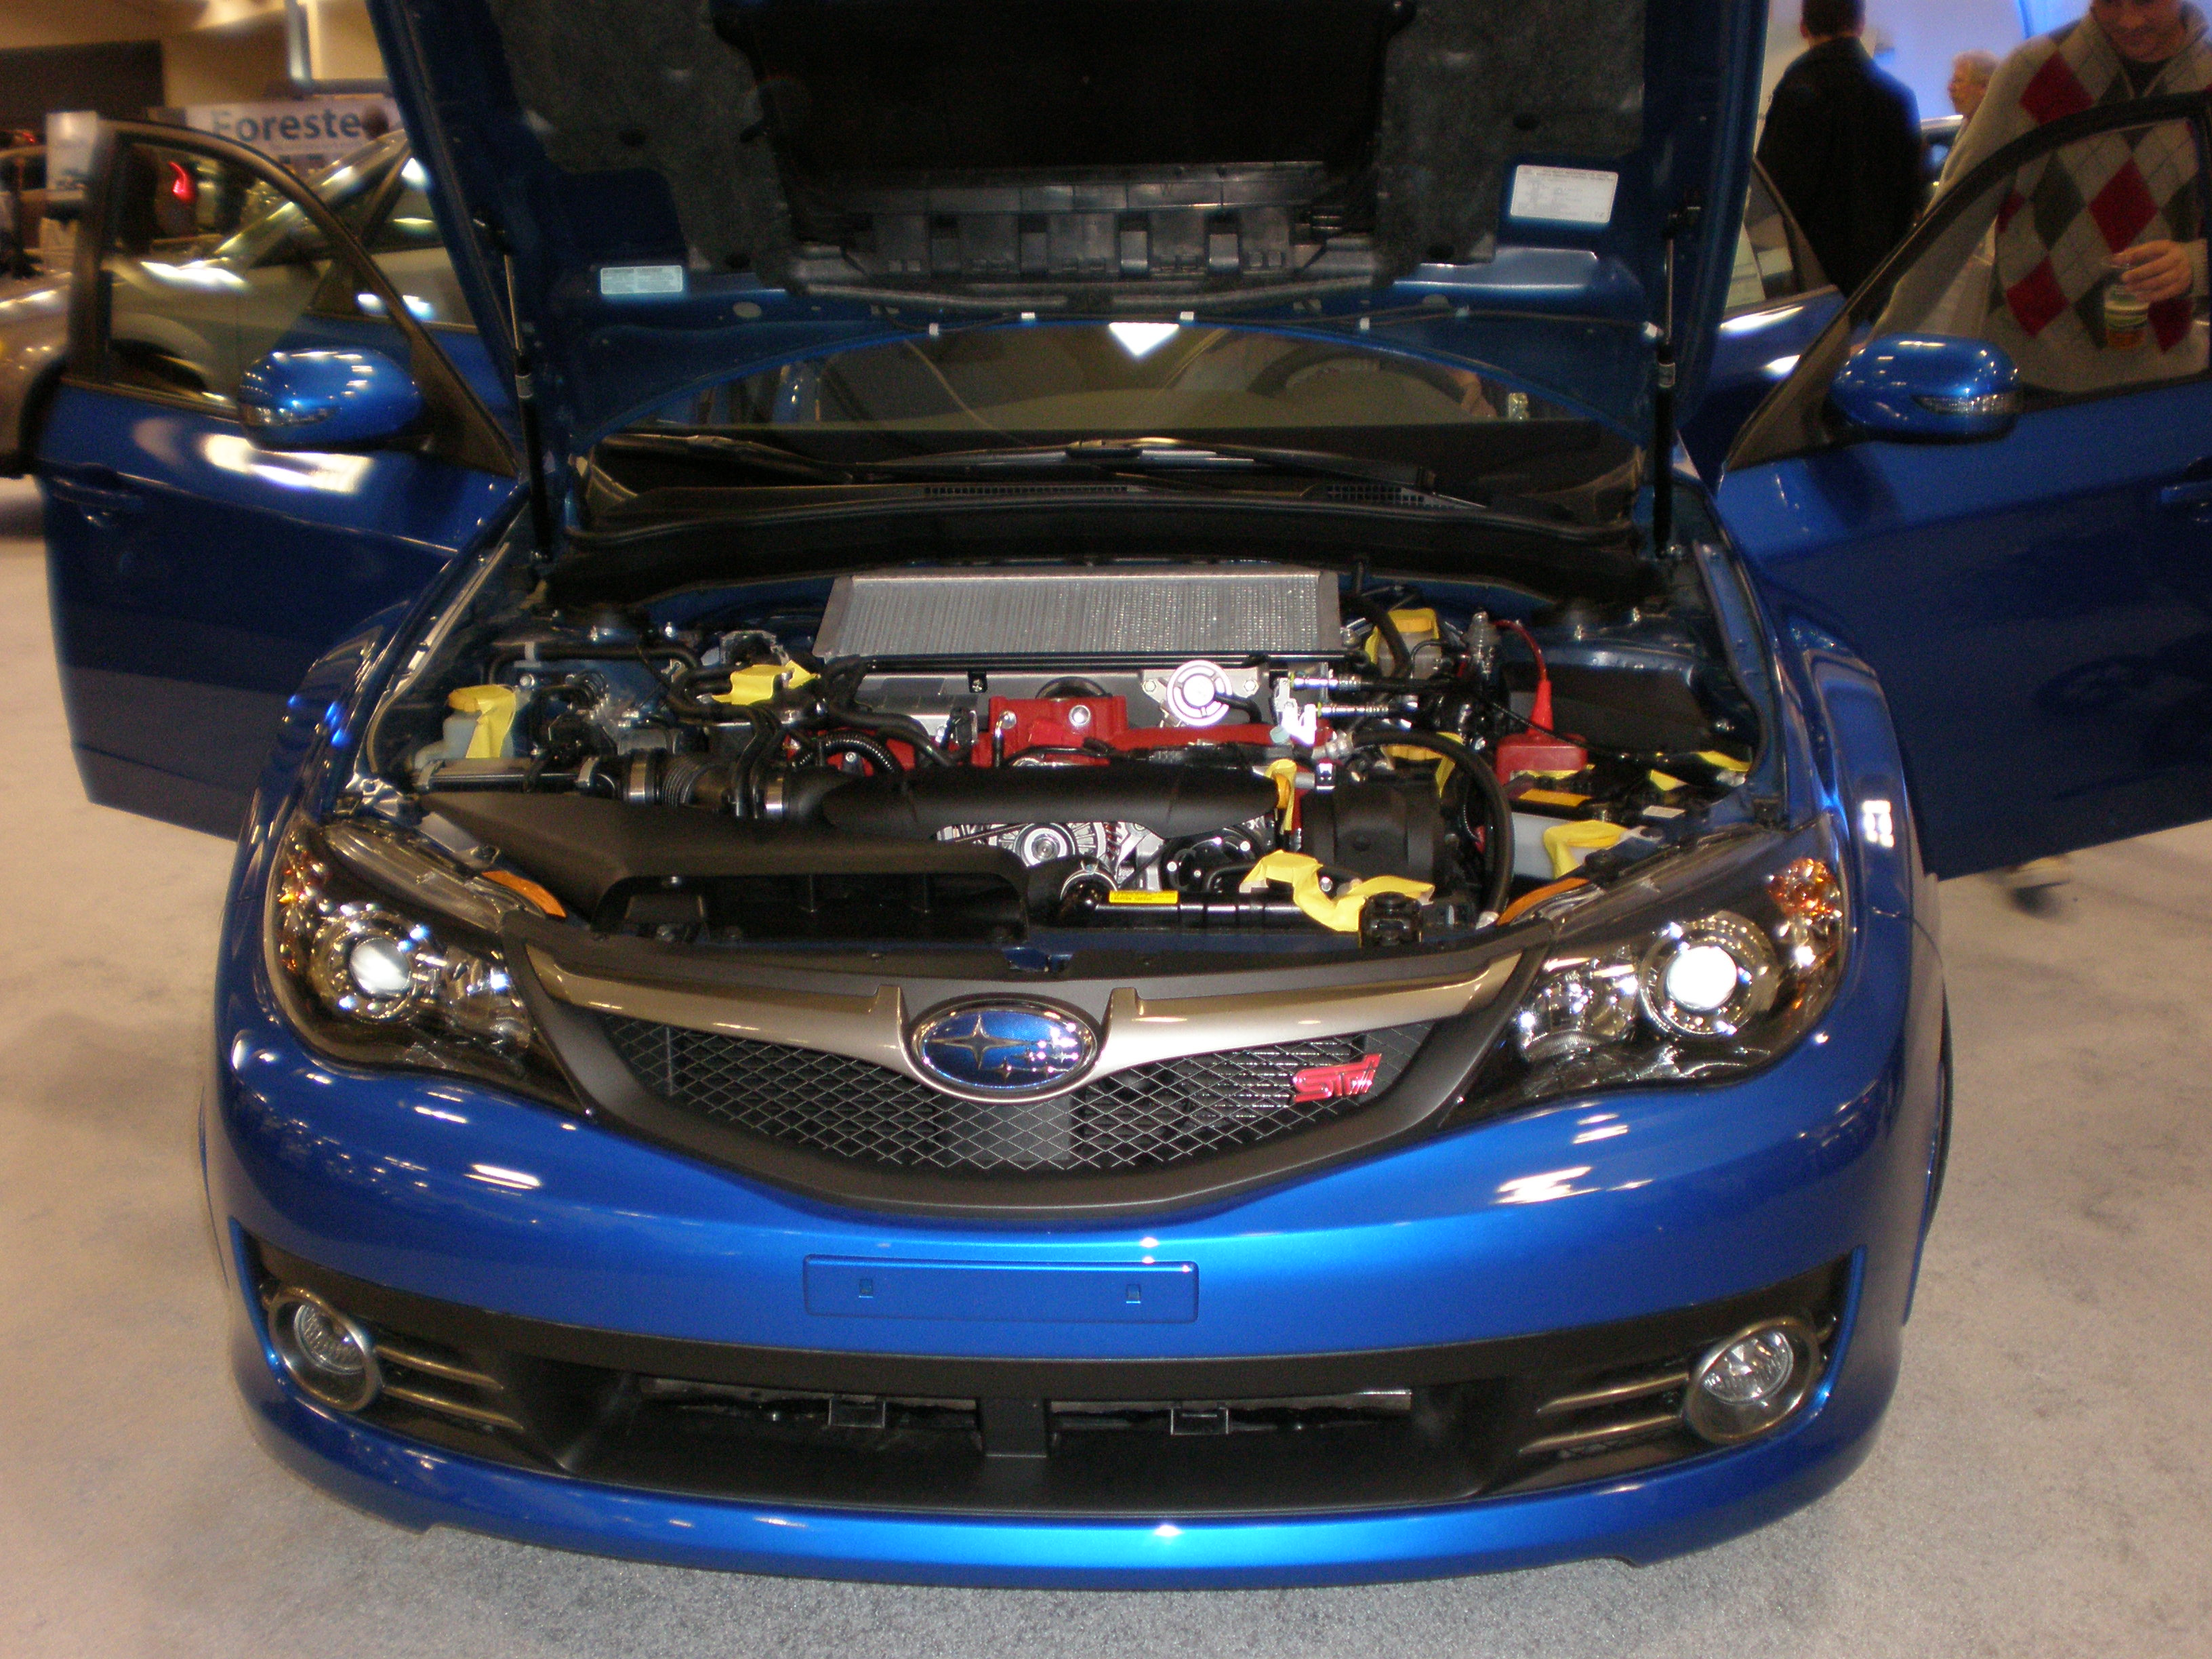 File 2009 Blue Subaru Impreza Wrx Sti Engine Jpg